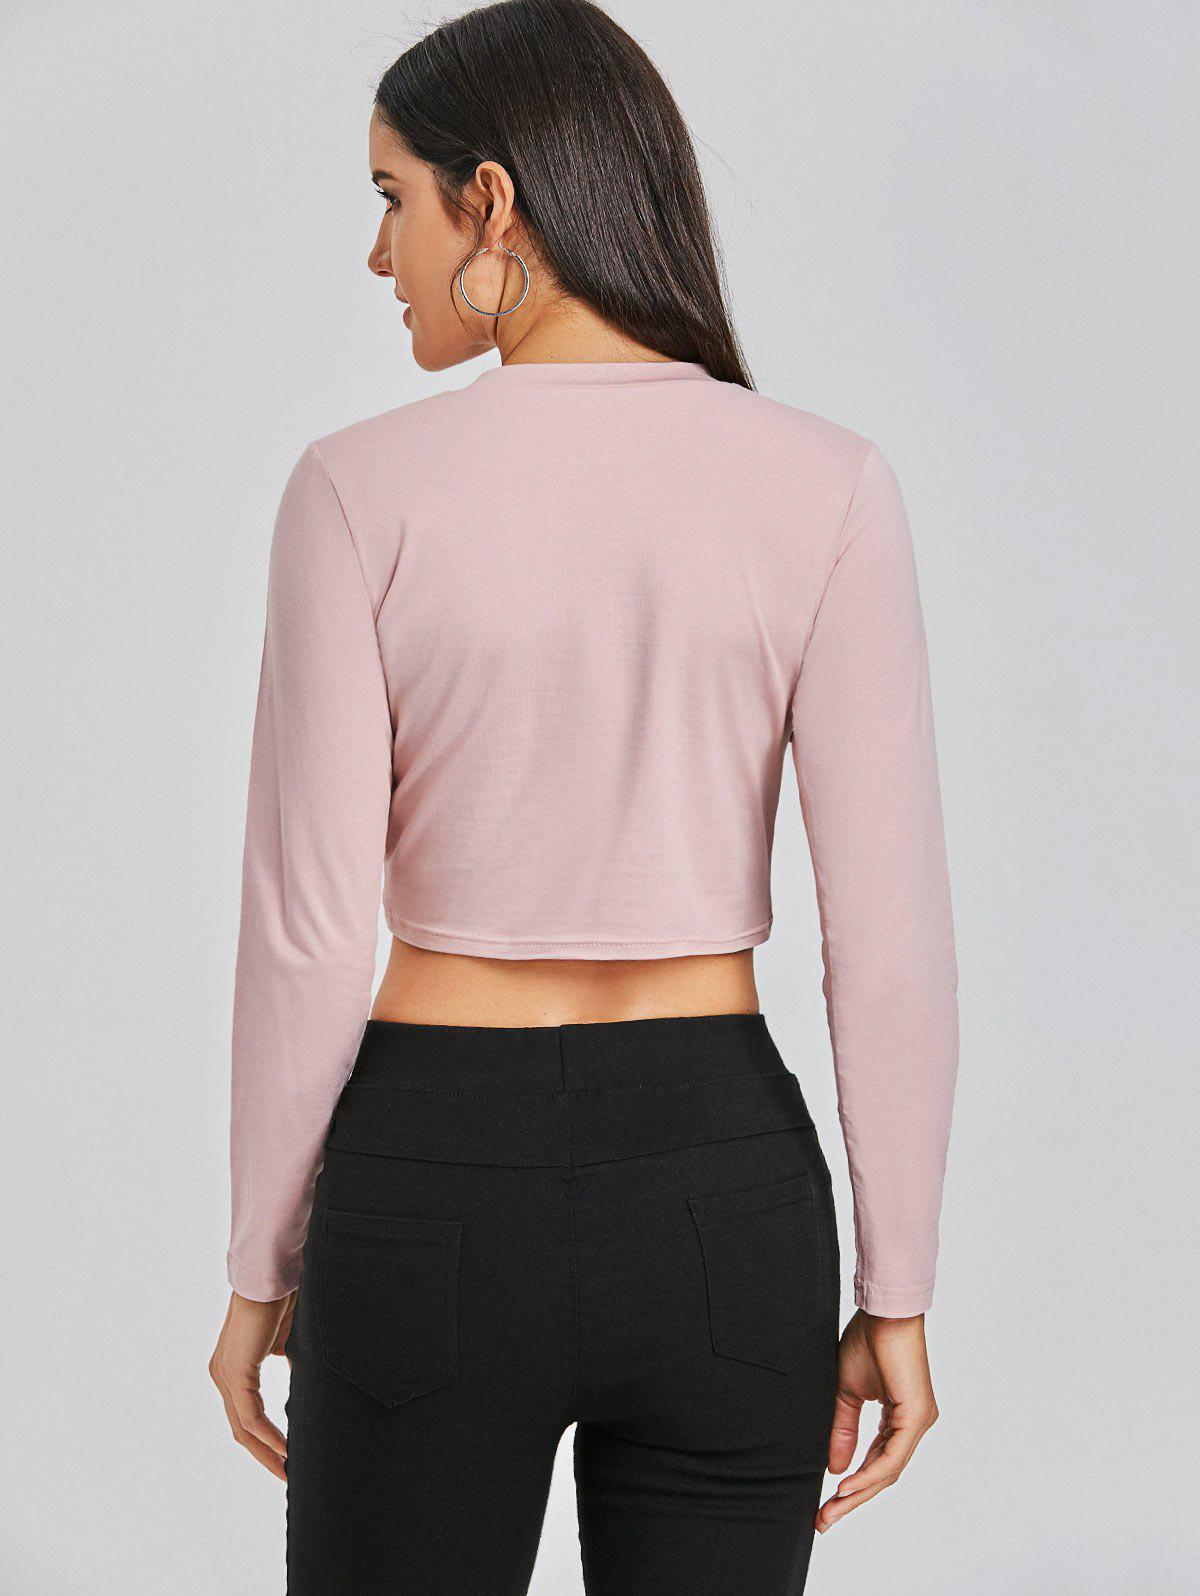 Cropped Front Twist Tee - PALE PINKISH GREY M